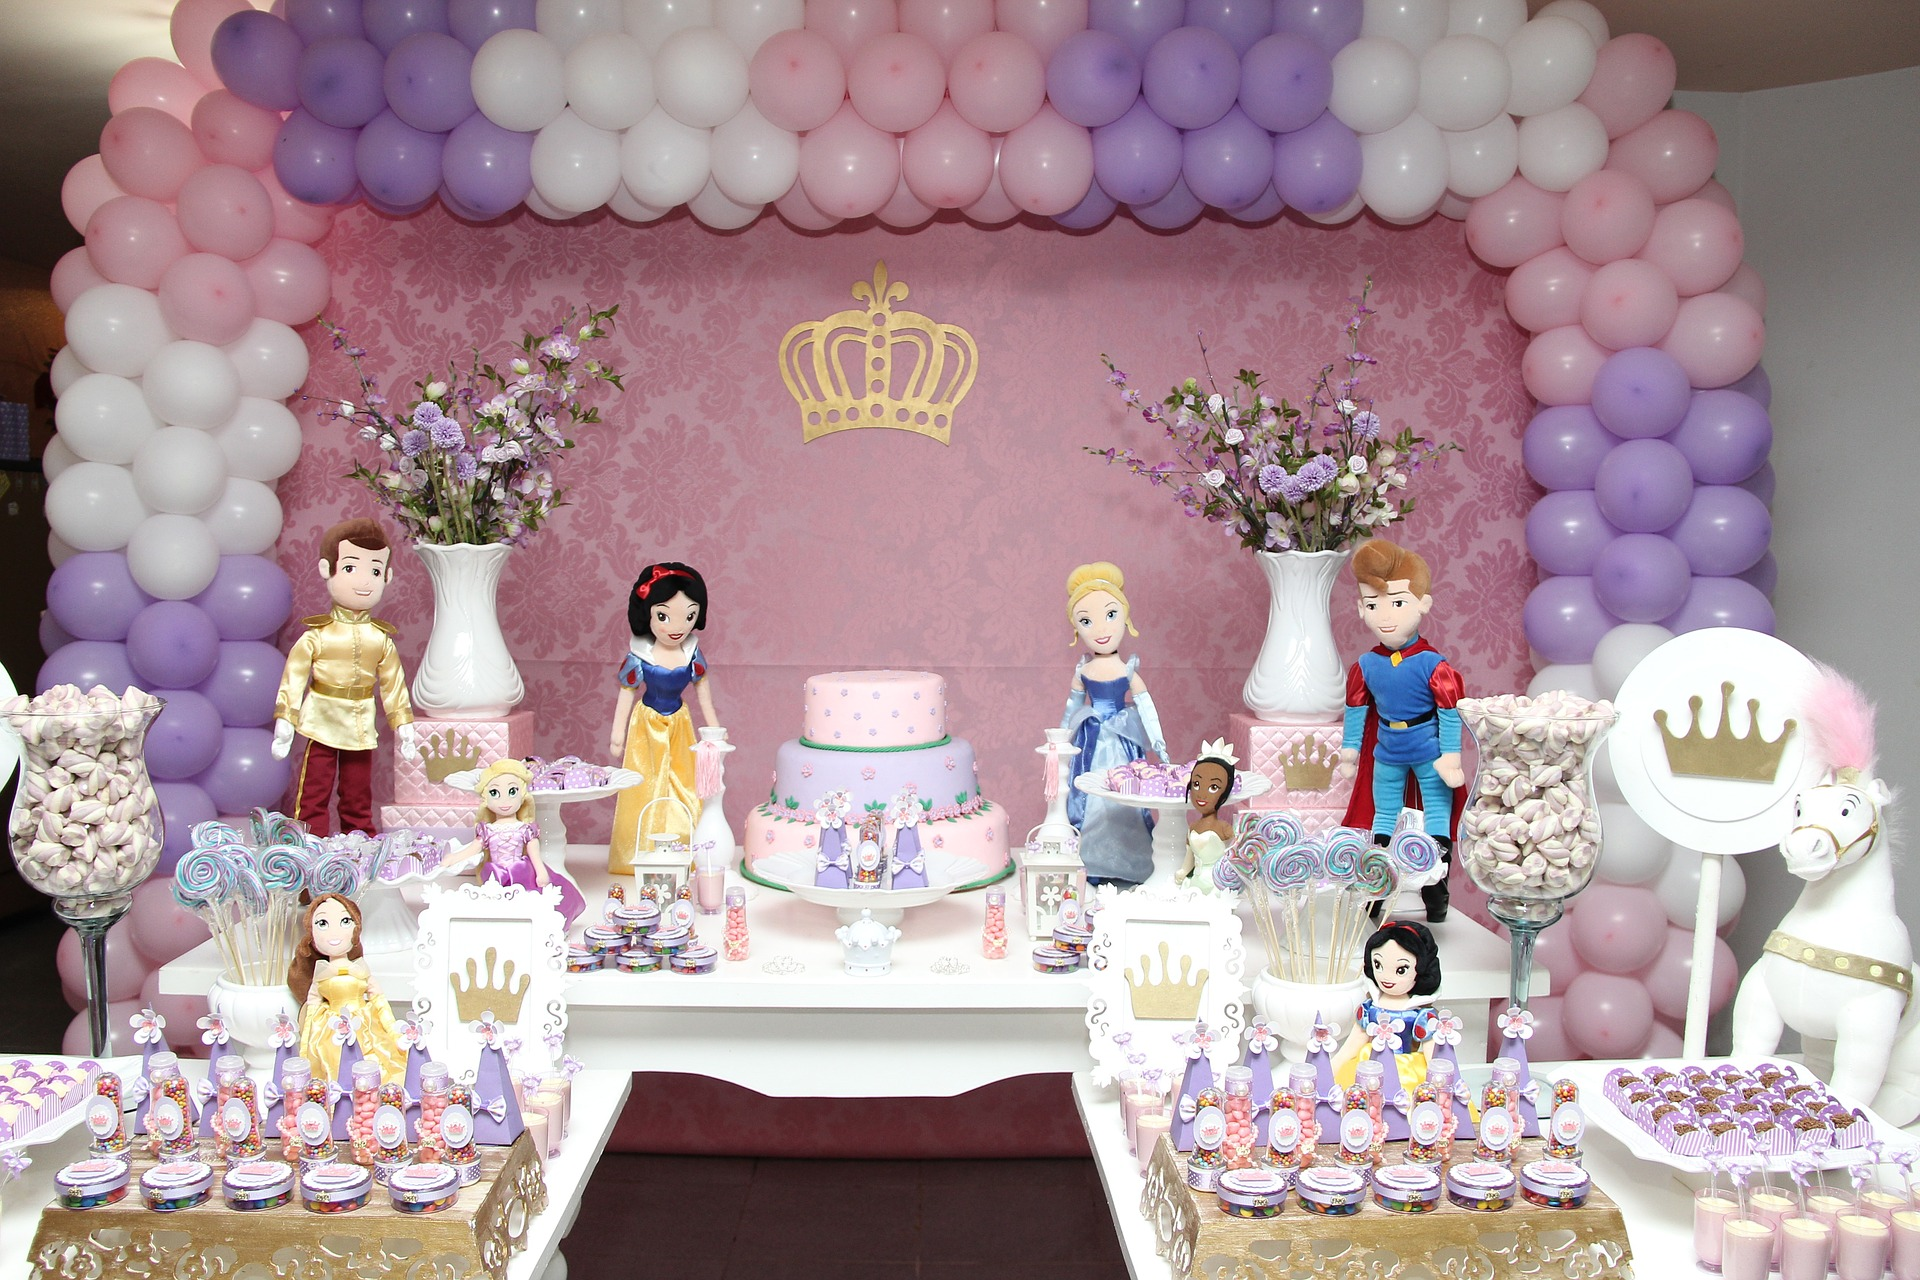 Girl-themed birthday party arrangment